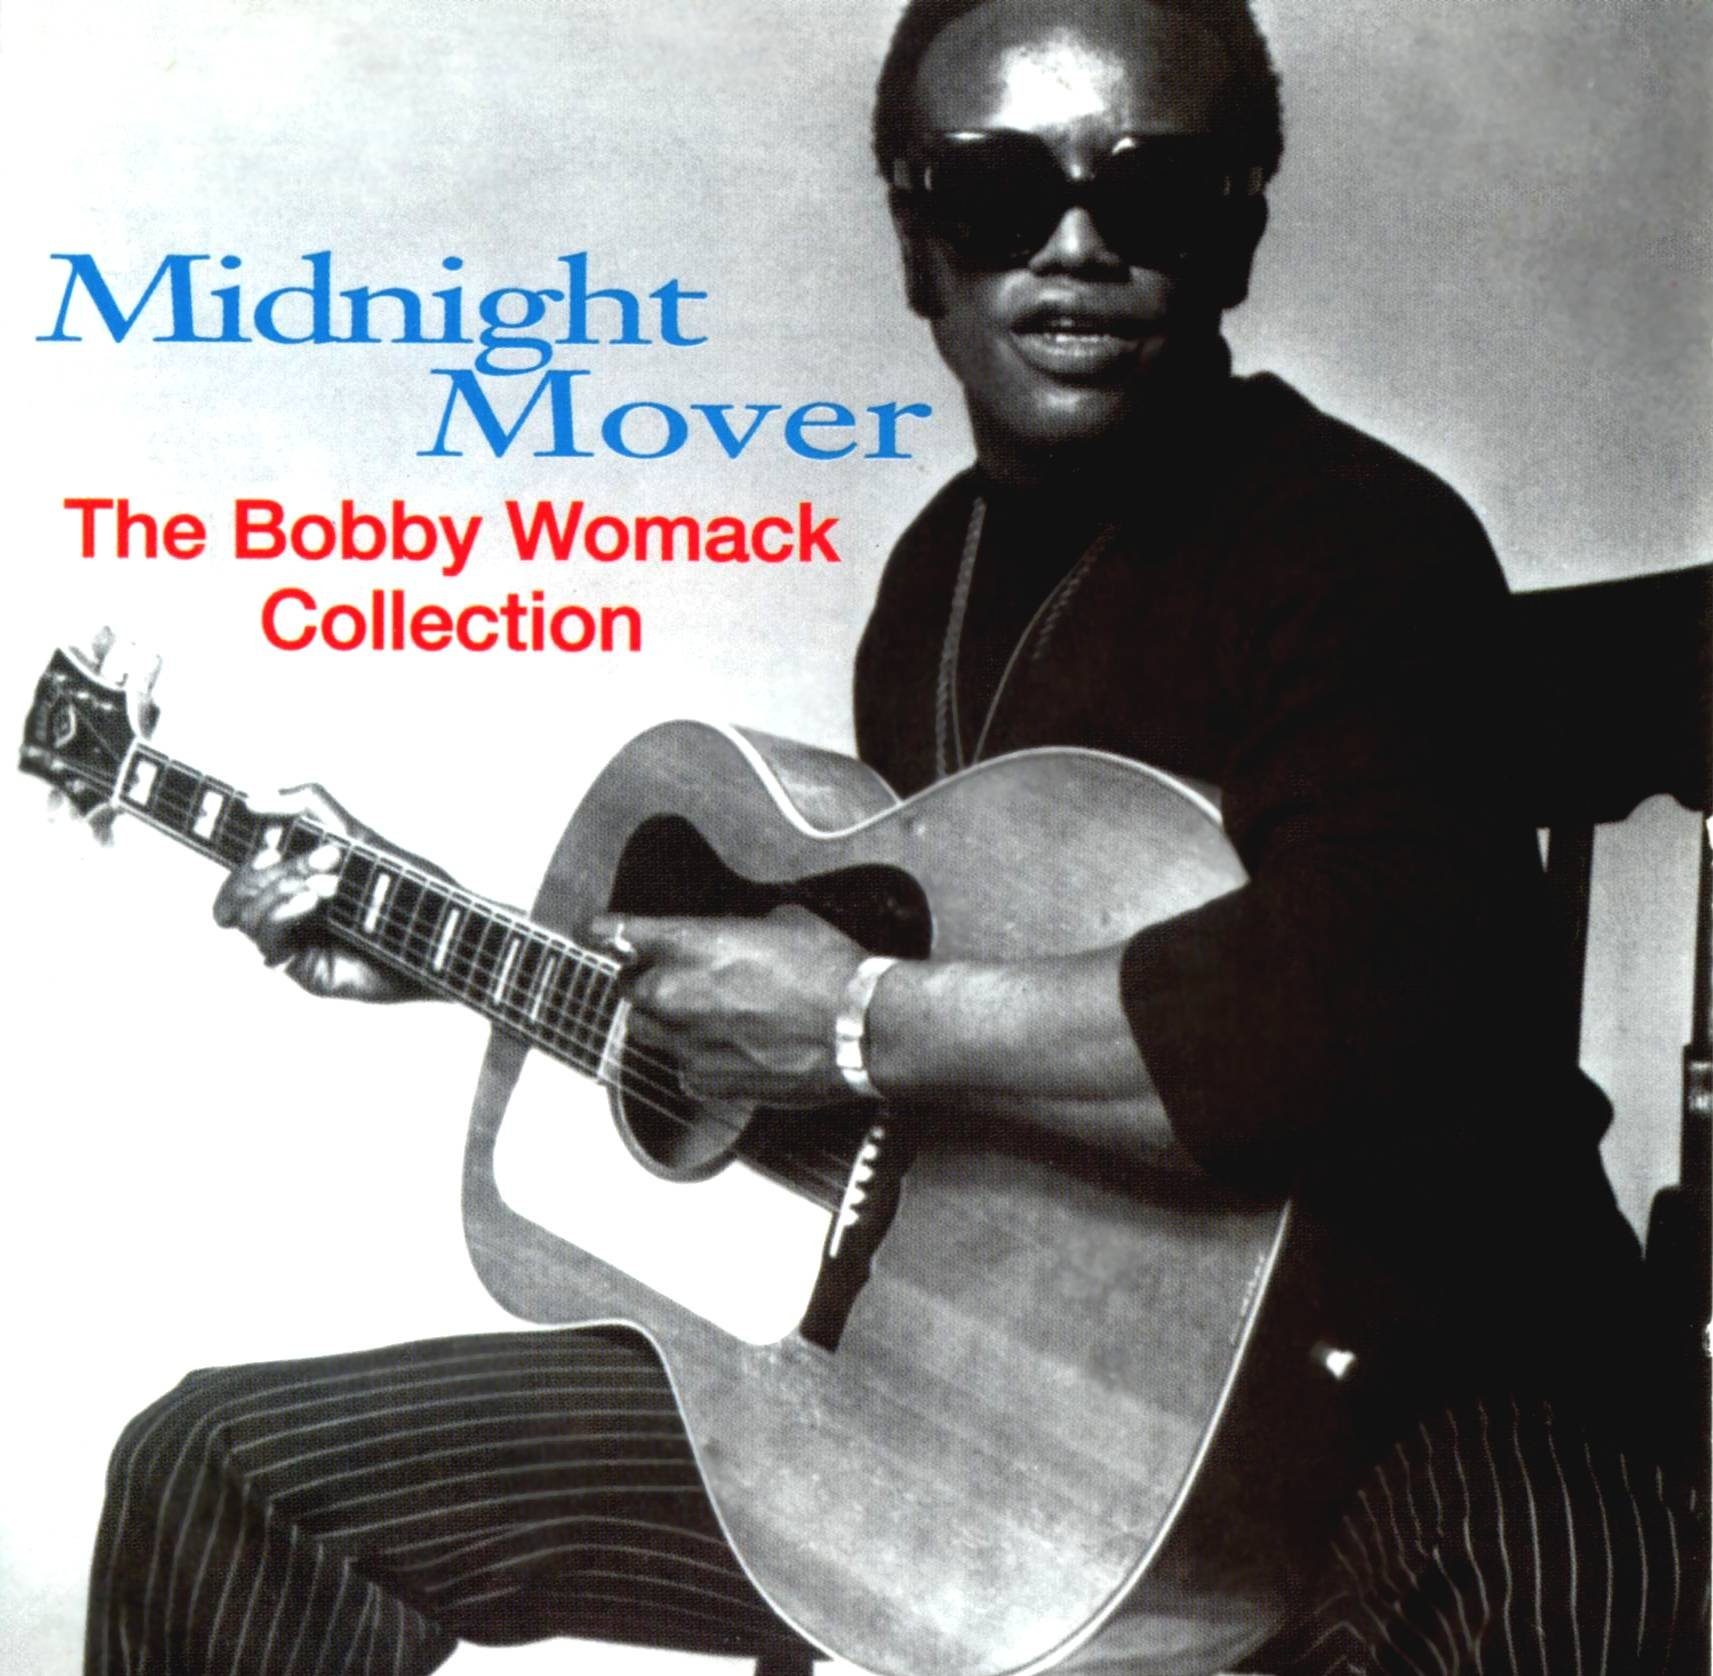 Midnight Mover: The Bobby Womack Collection by EMI / Minit / Liberty